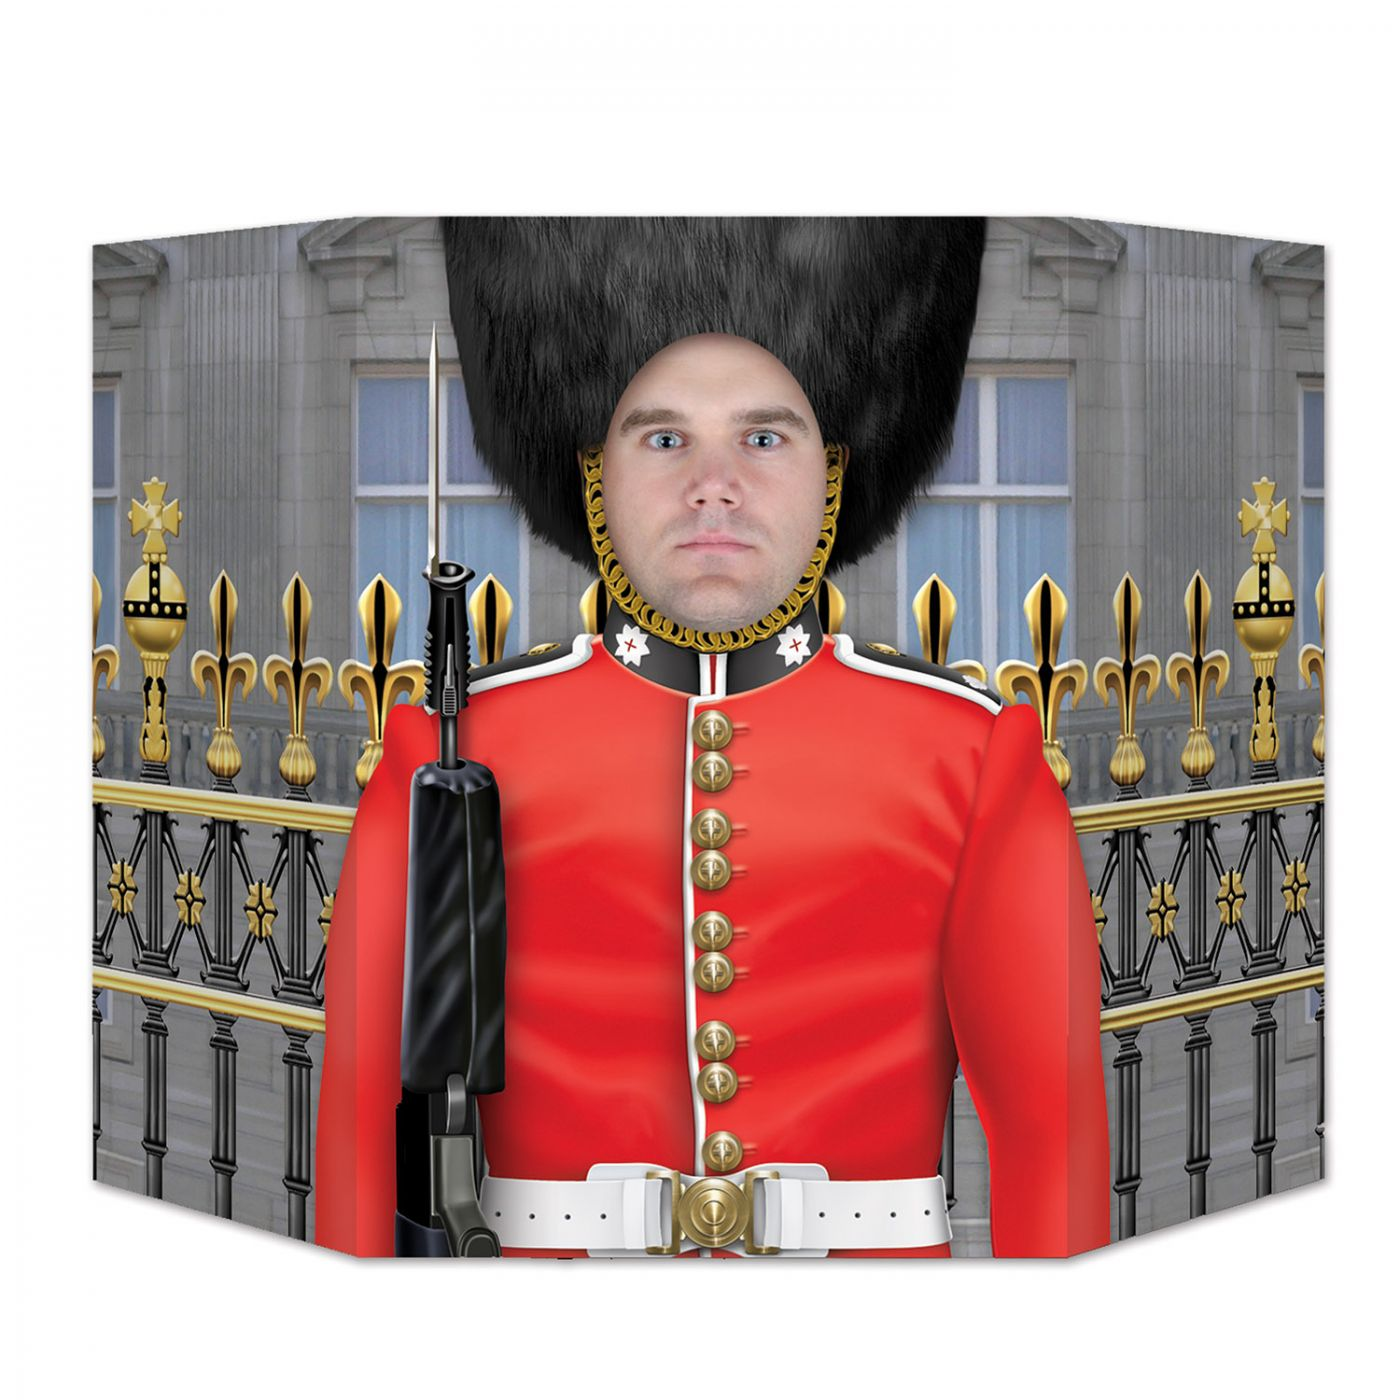 Royal Guard Photo Prop (6) image